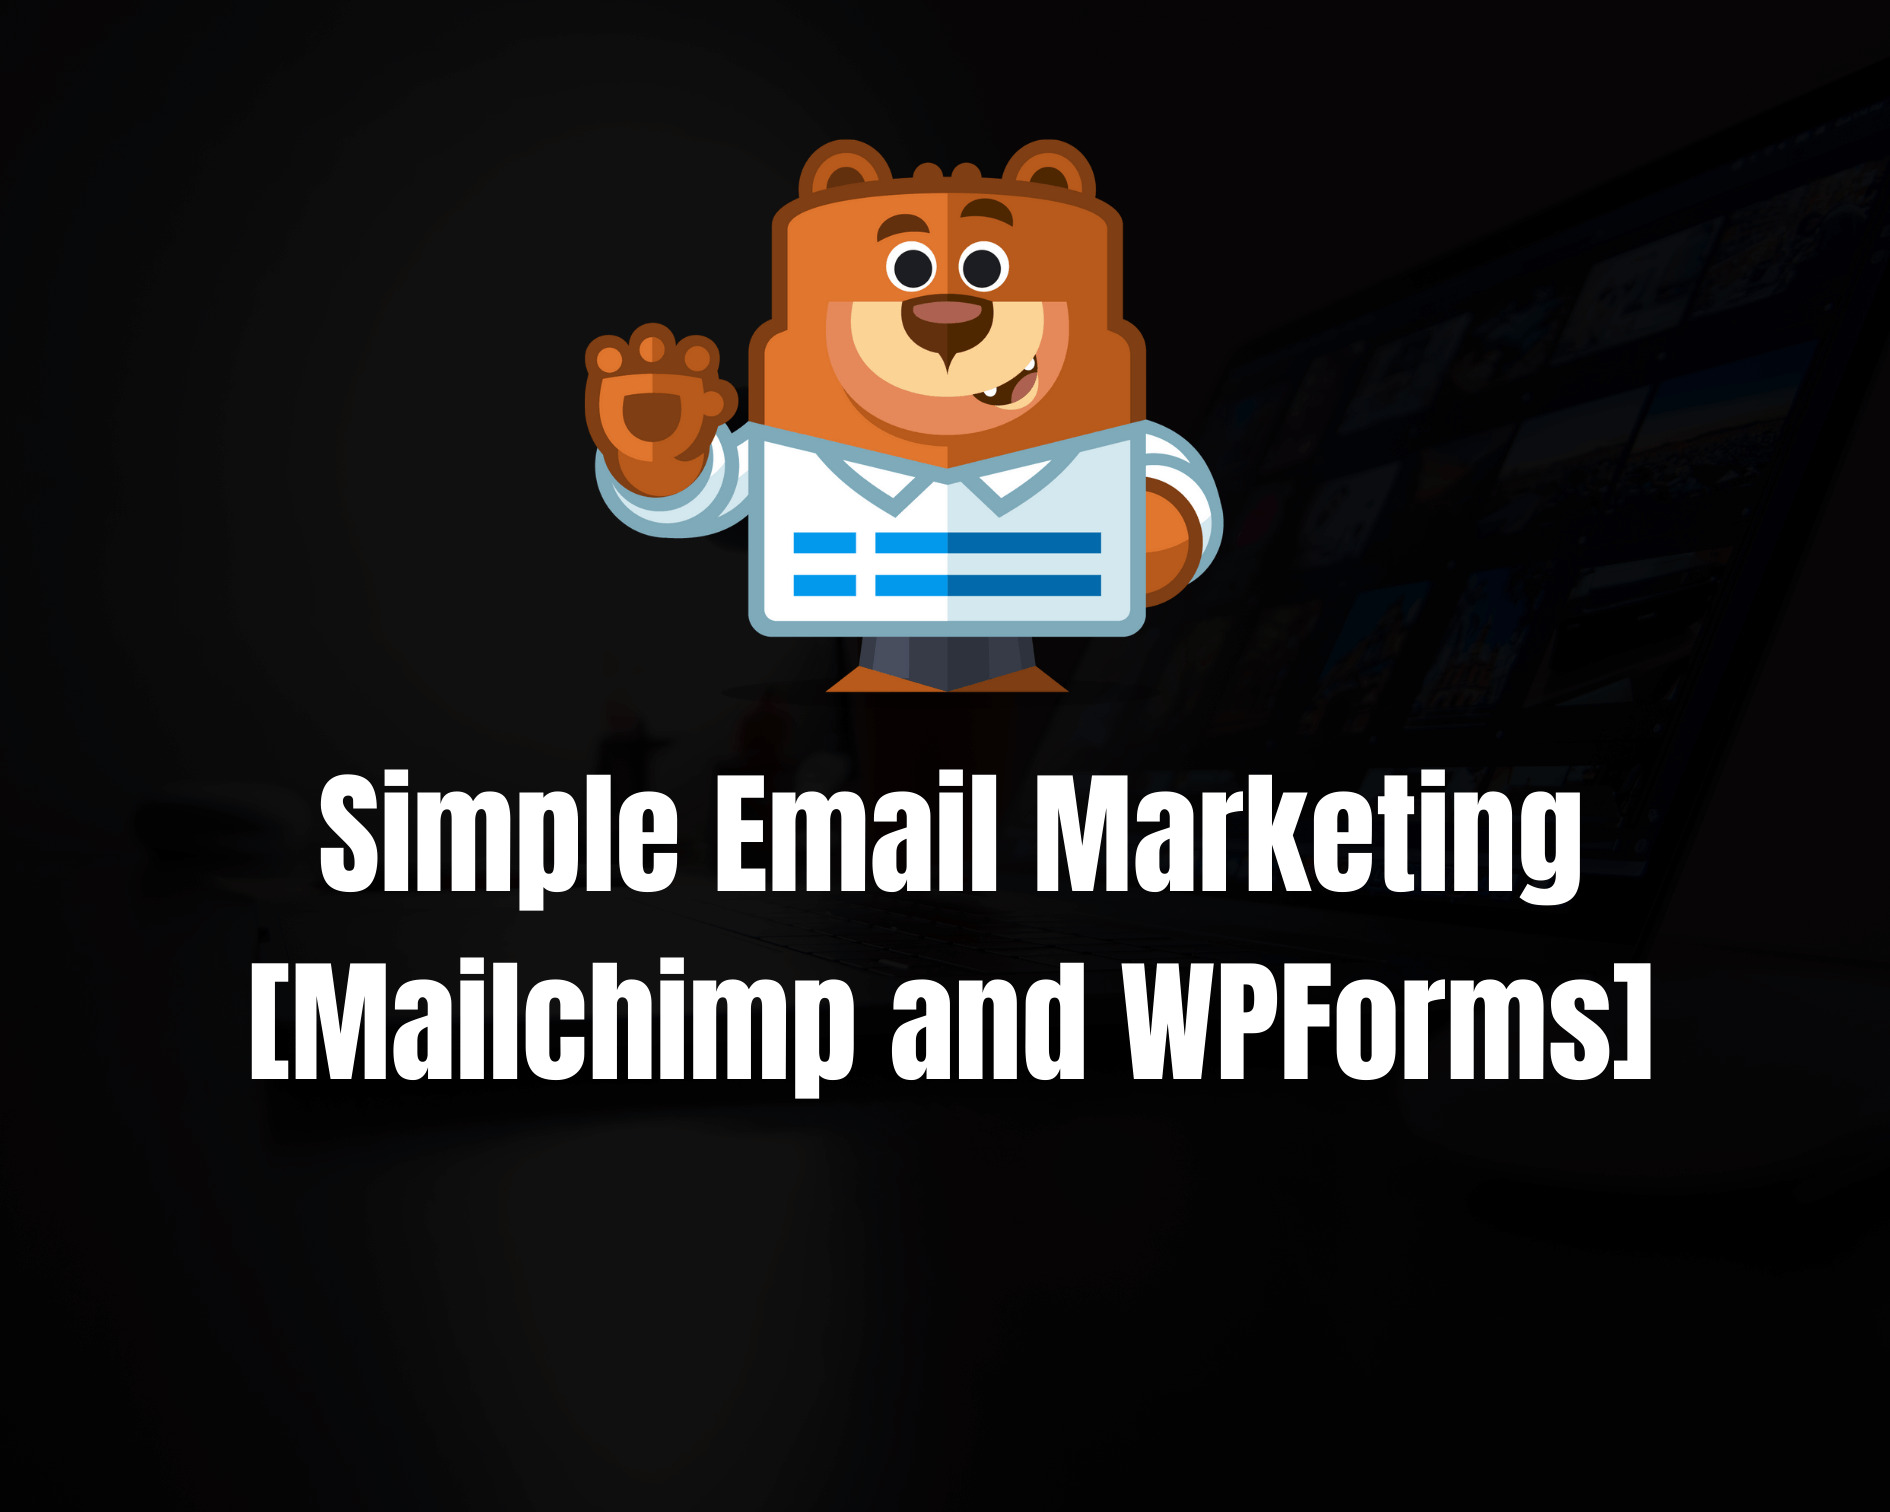 Simple-Email-Marketing-Mailchim-and-WPFroms